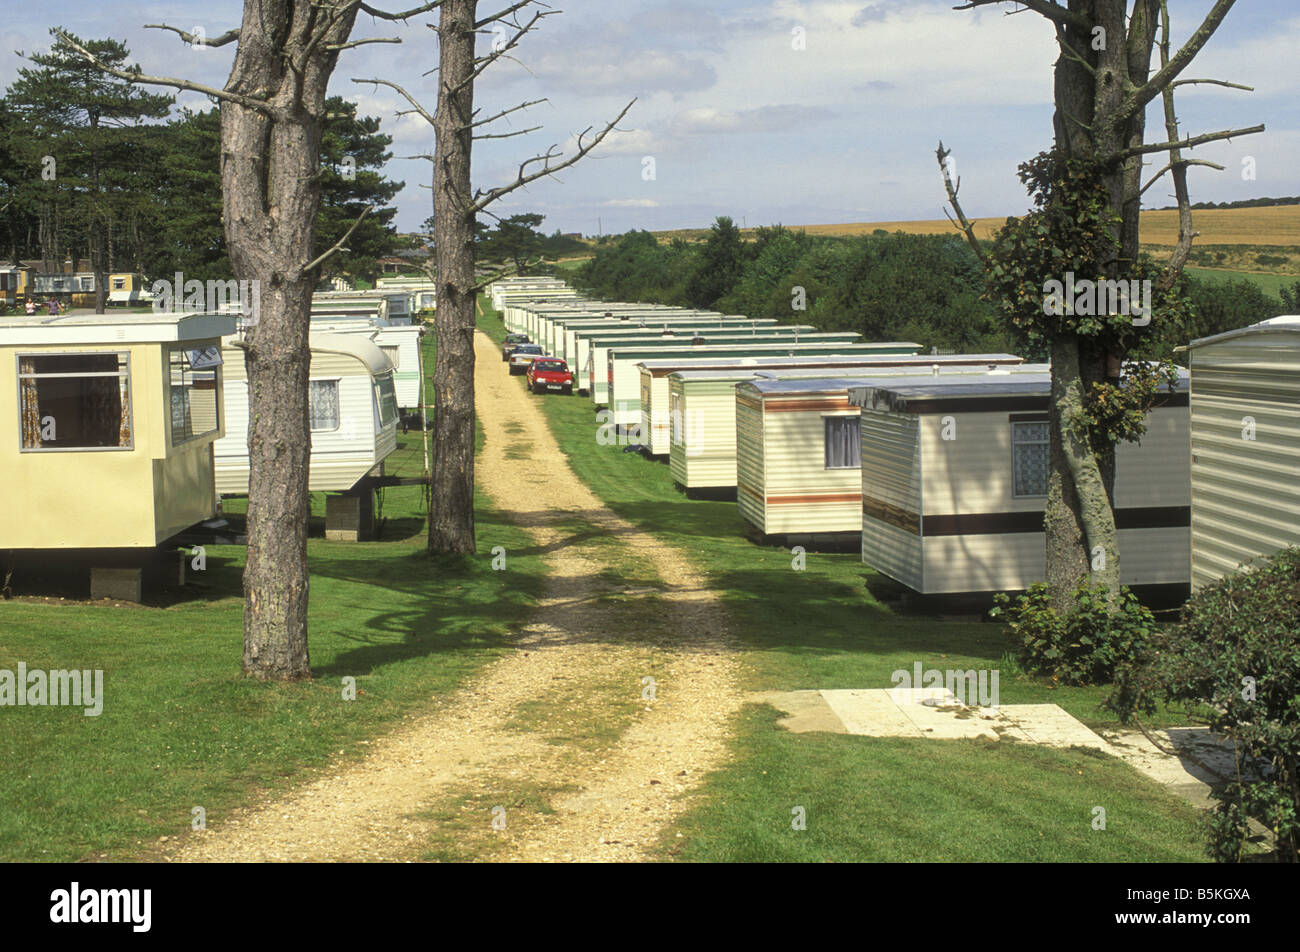 Mobile Home Park Dorset UK